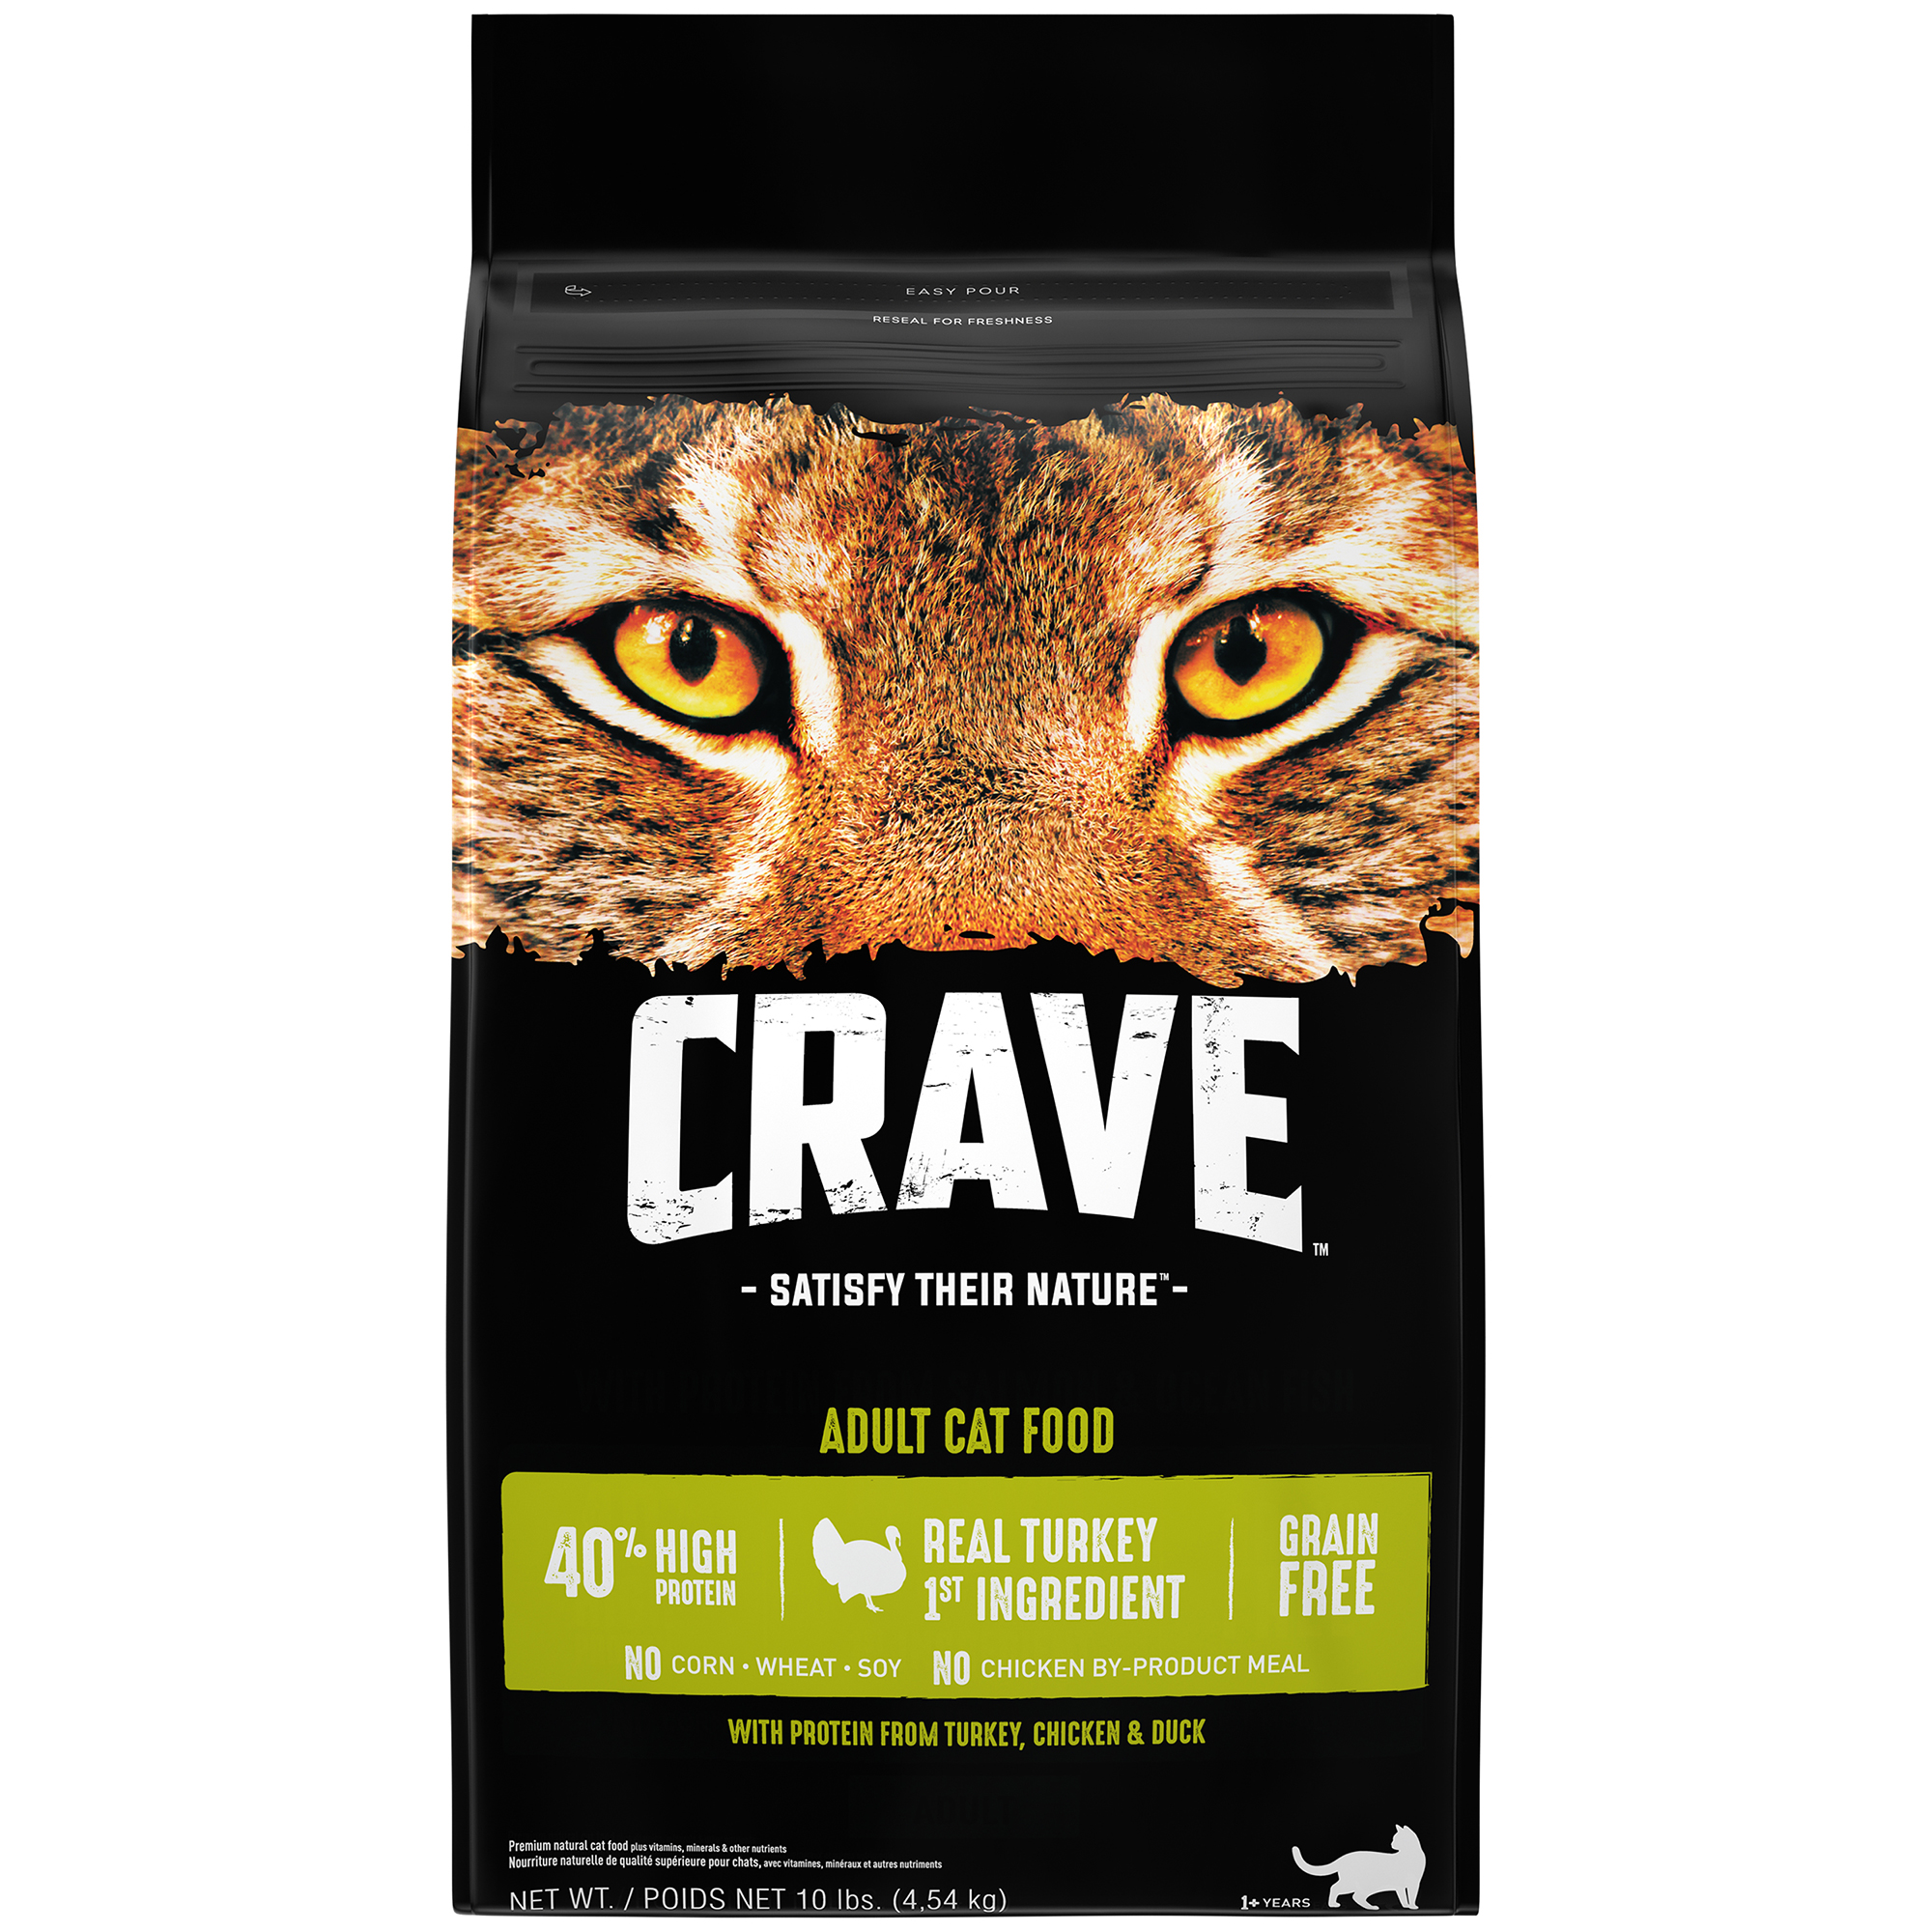 Crave Grain-Free with Protein from Turkey, Chicken, & Duck Adult Dry Cat Food, 10 lb